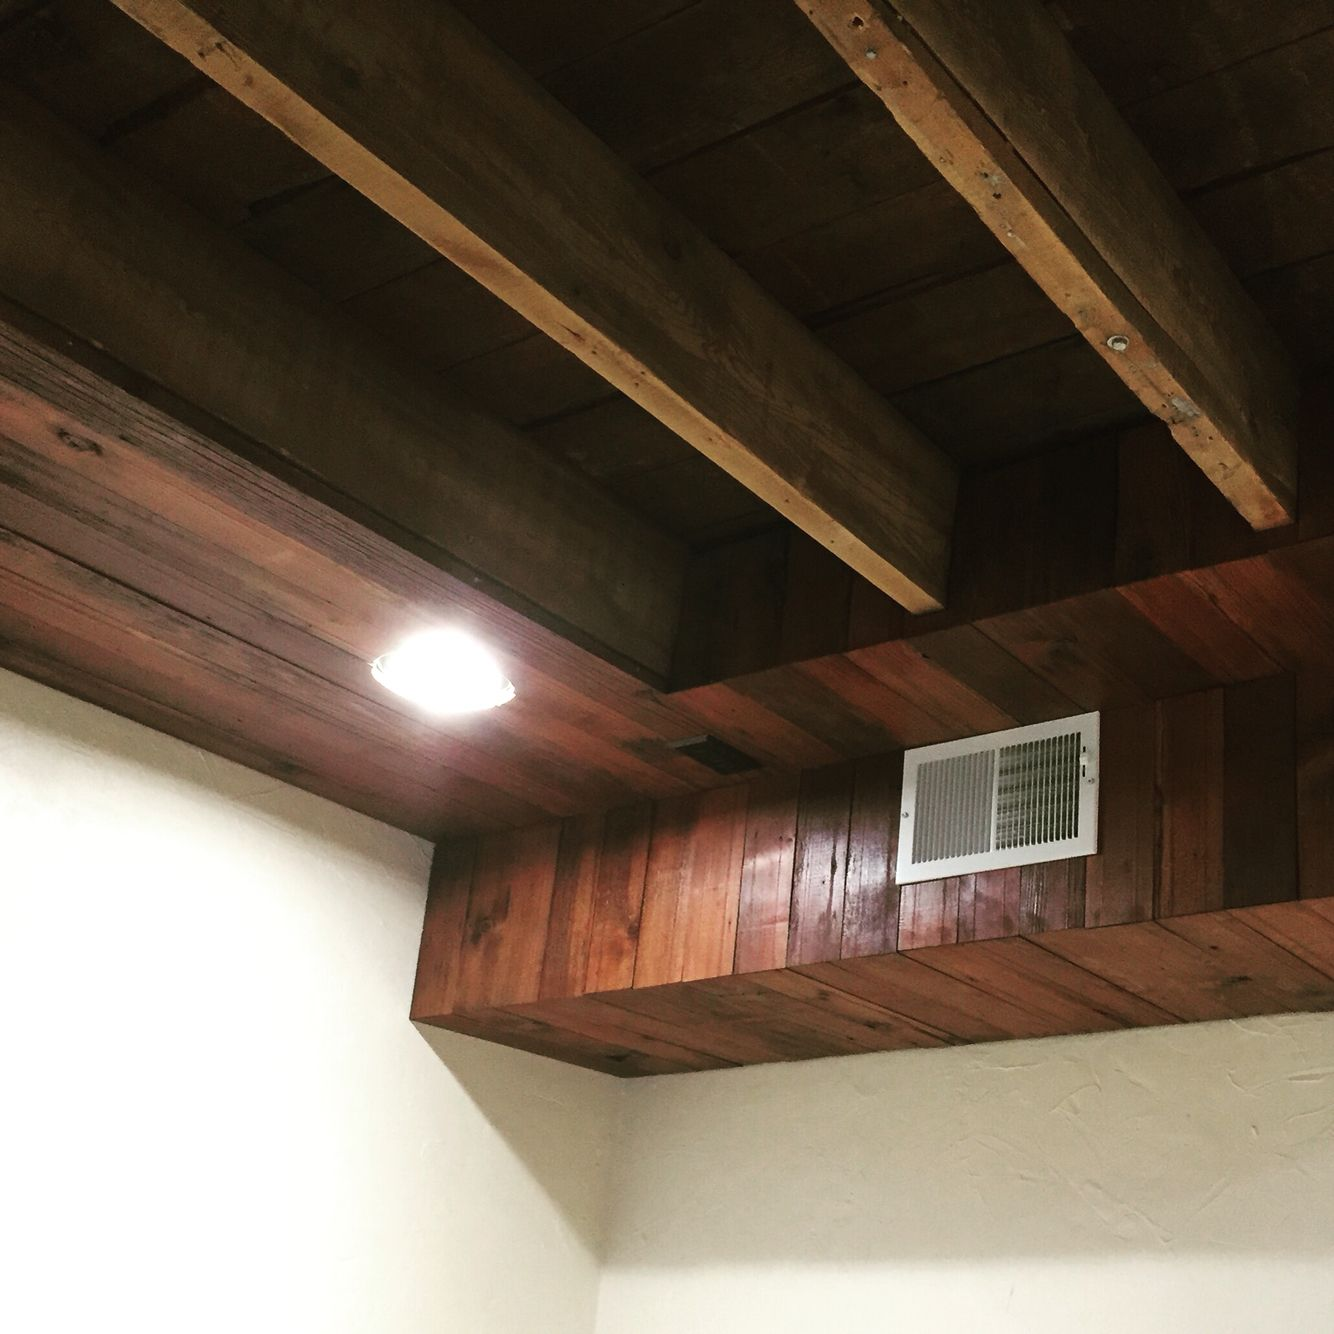 Hide duct work and ceiling wires in basement with ...